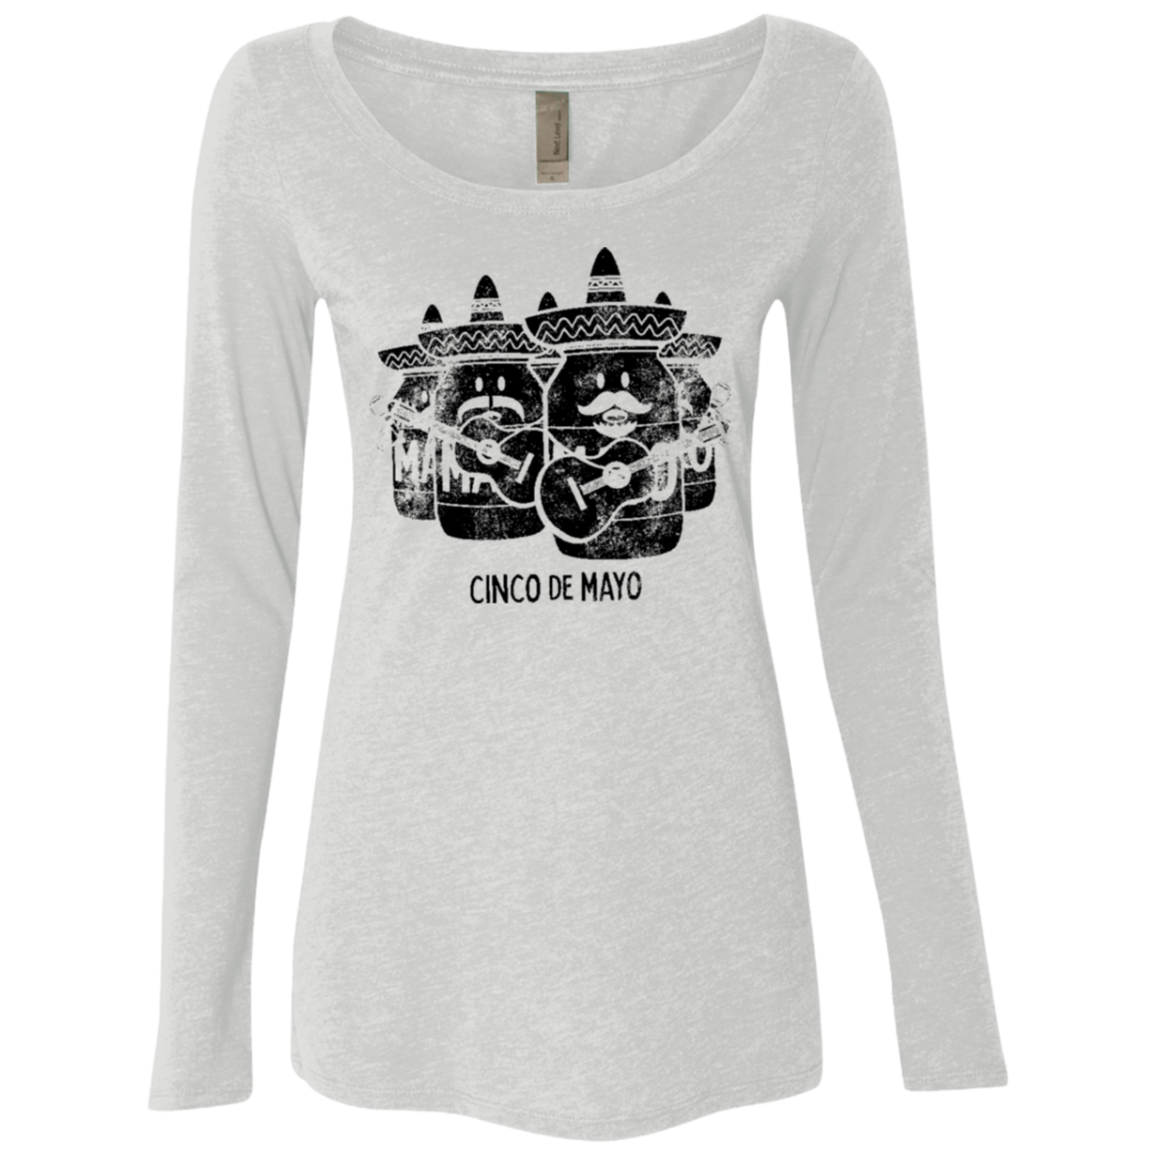 Cinco de Mayo Women's Long Sleeve Tee